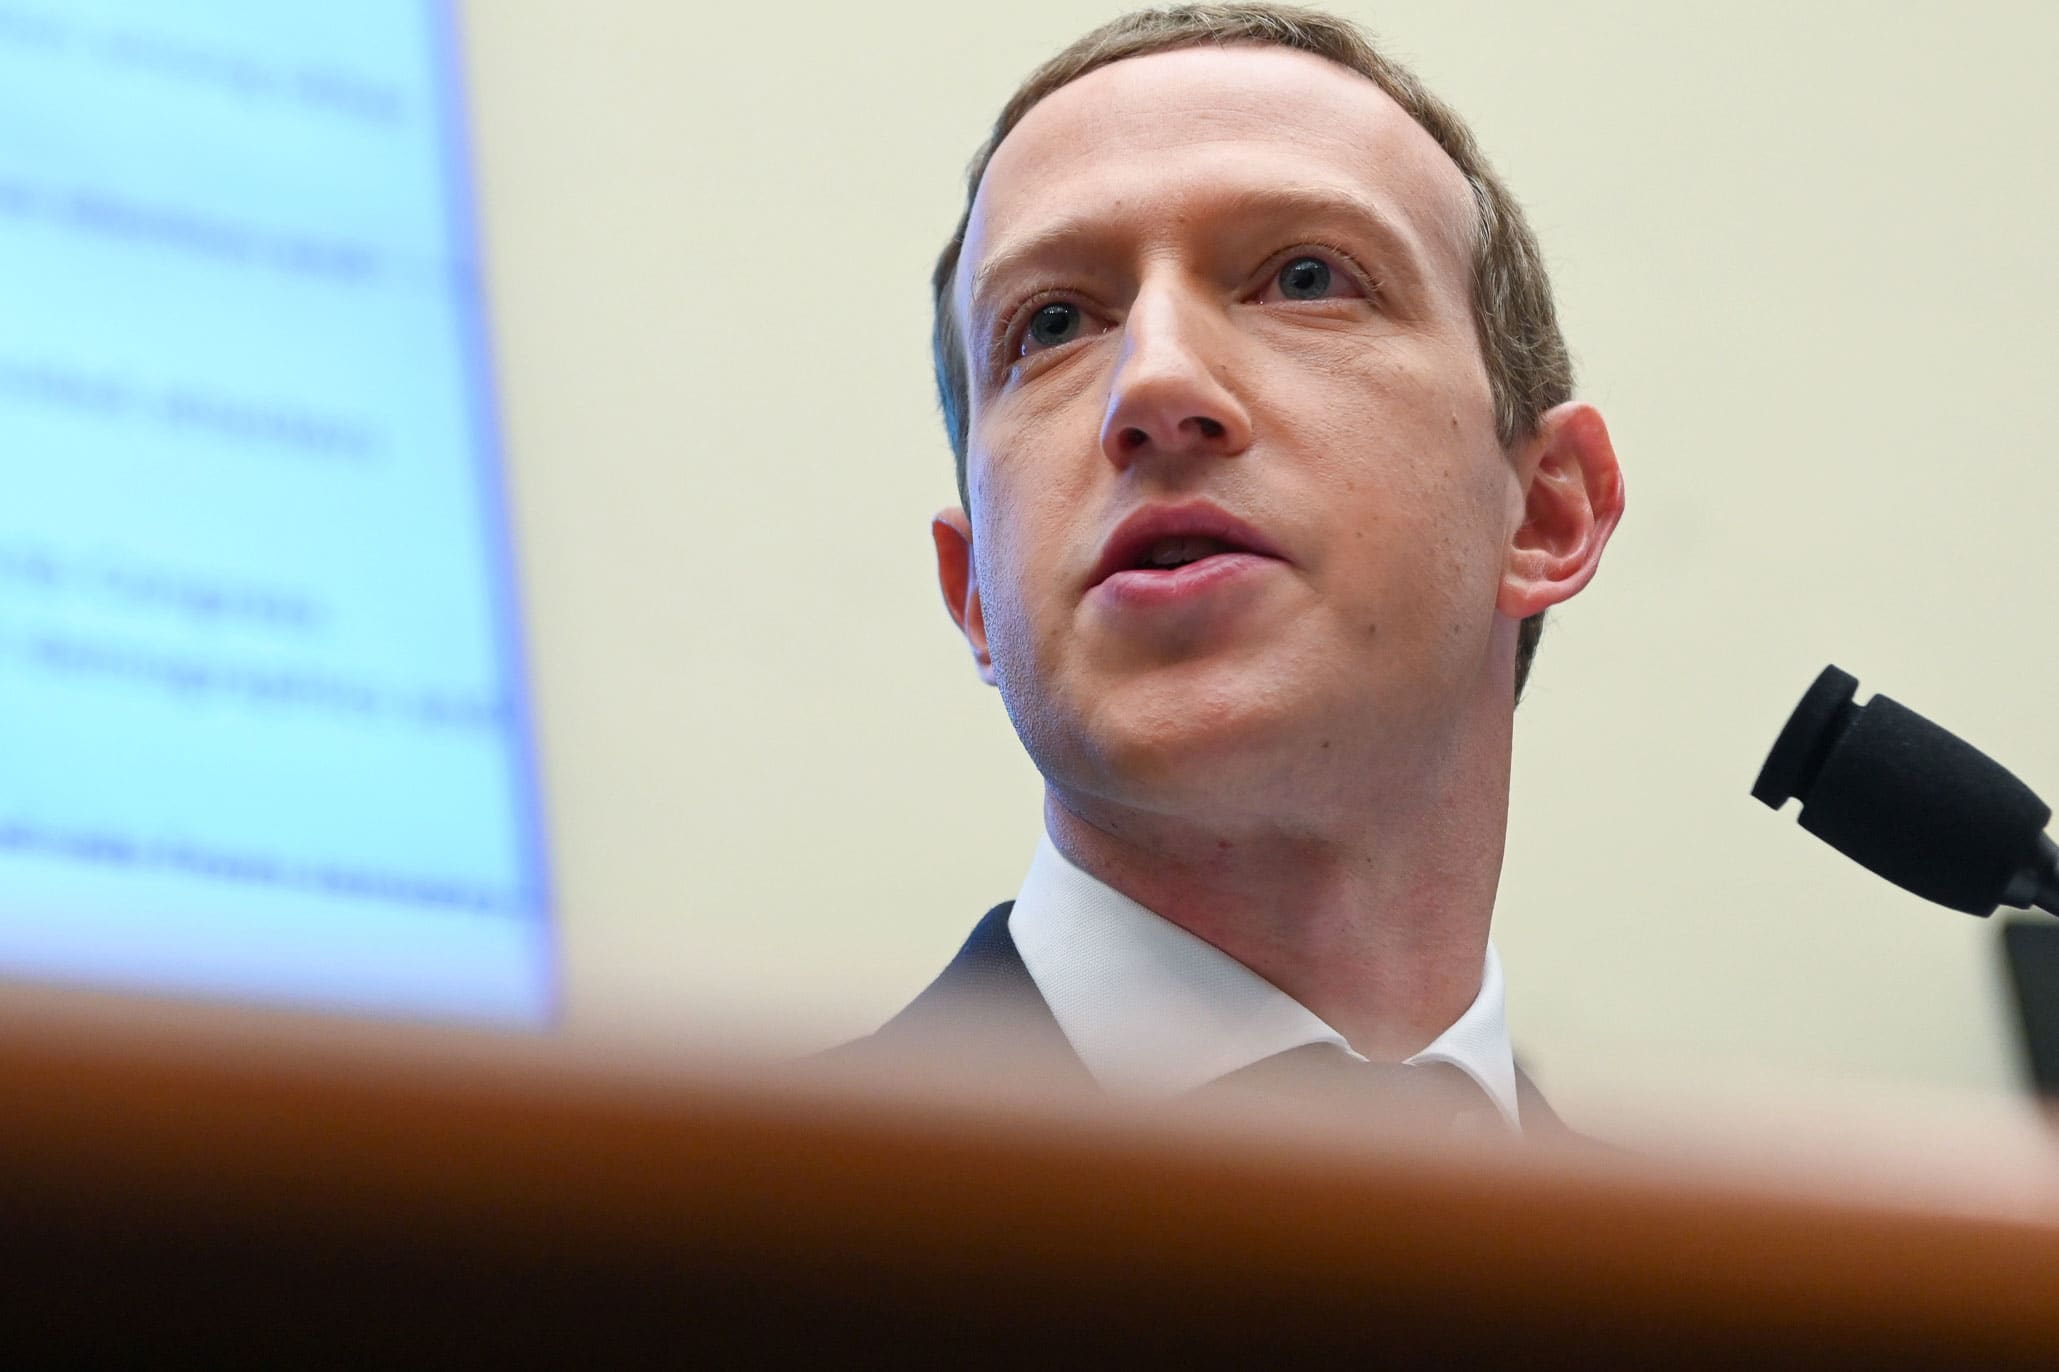 Zuckerberg outlines how Facebook will thrive after Apple privacy change – CNBC